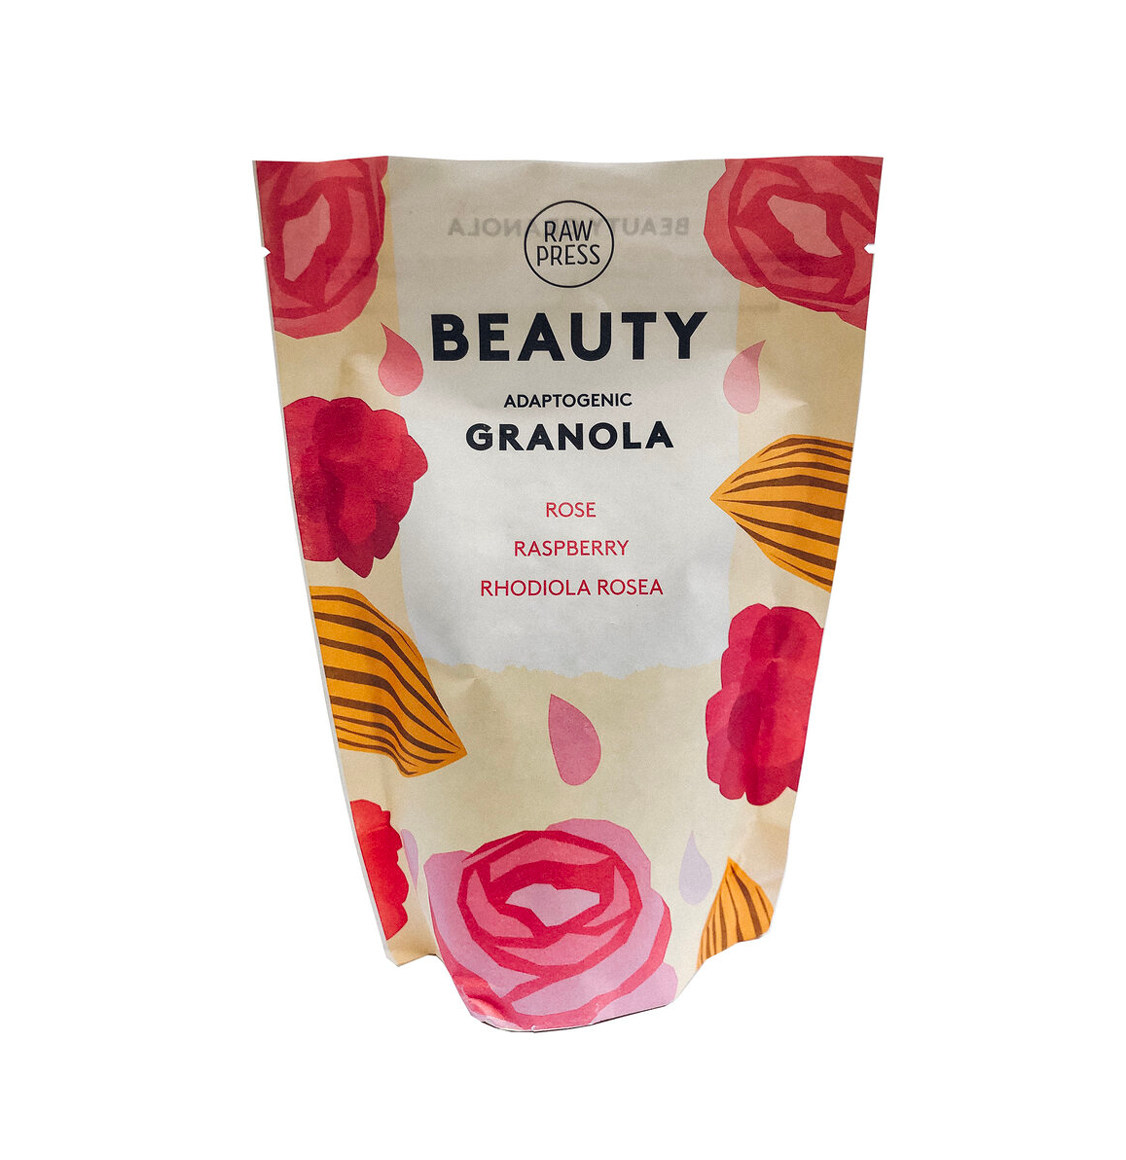 Raw Press Adaptogenic Beauty Granola Rose Raspberry Rhodiola Rosea